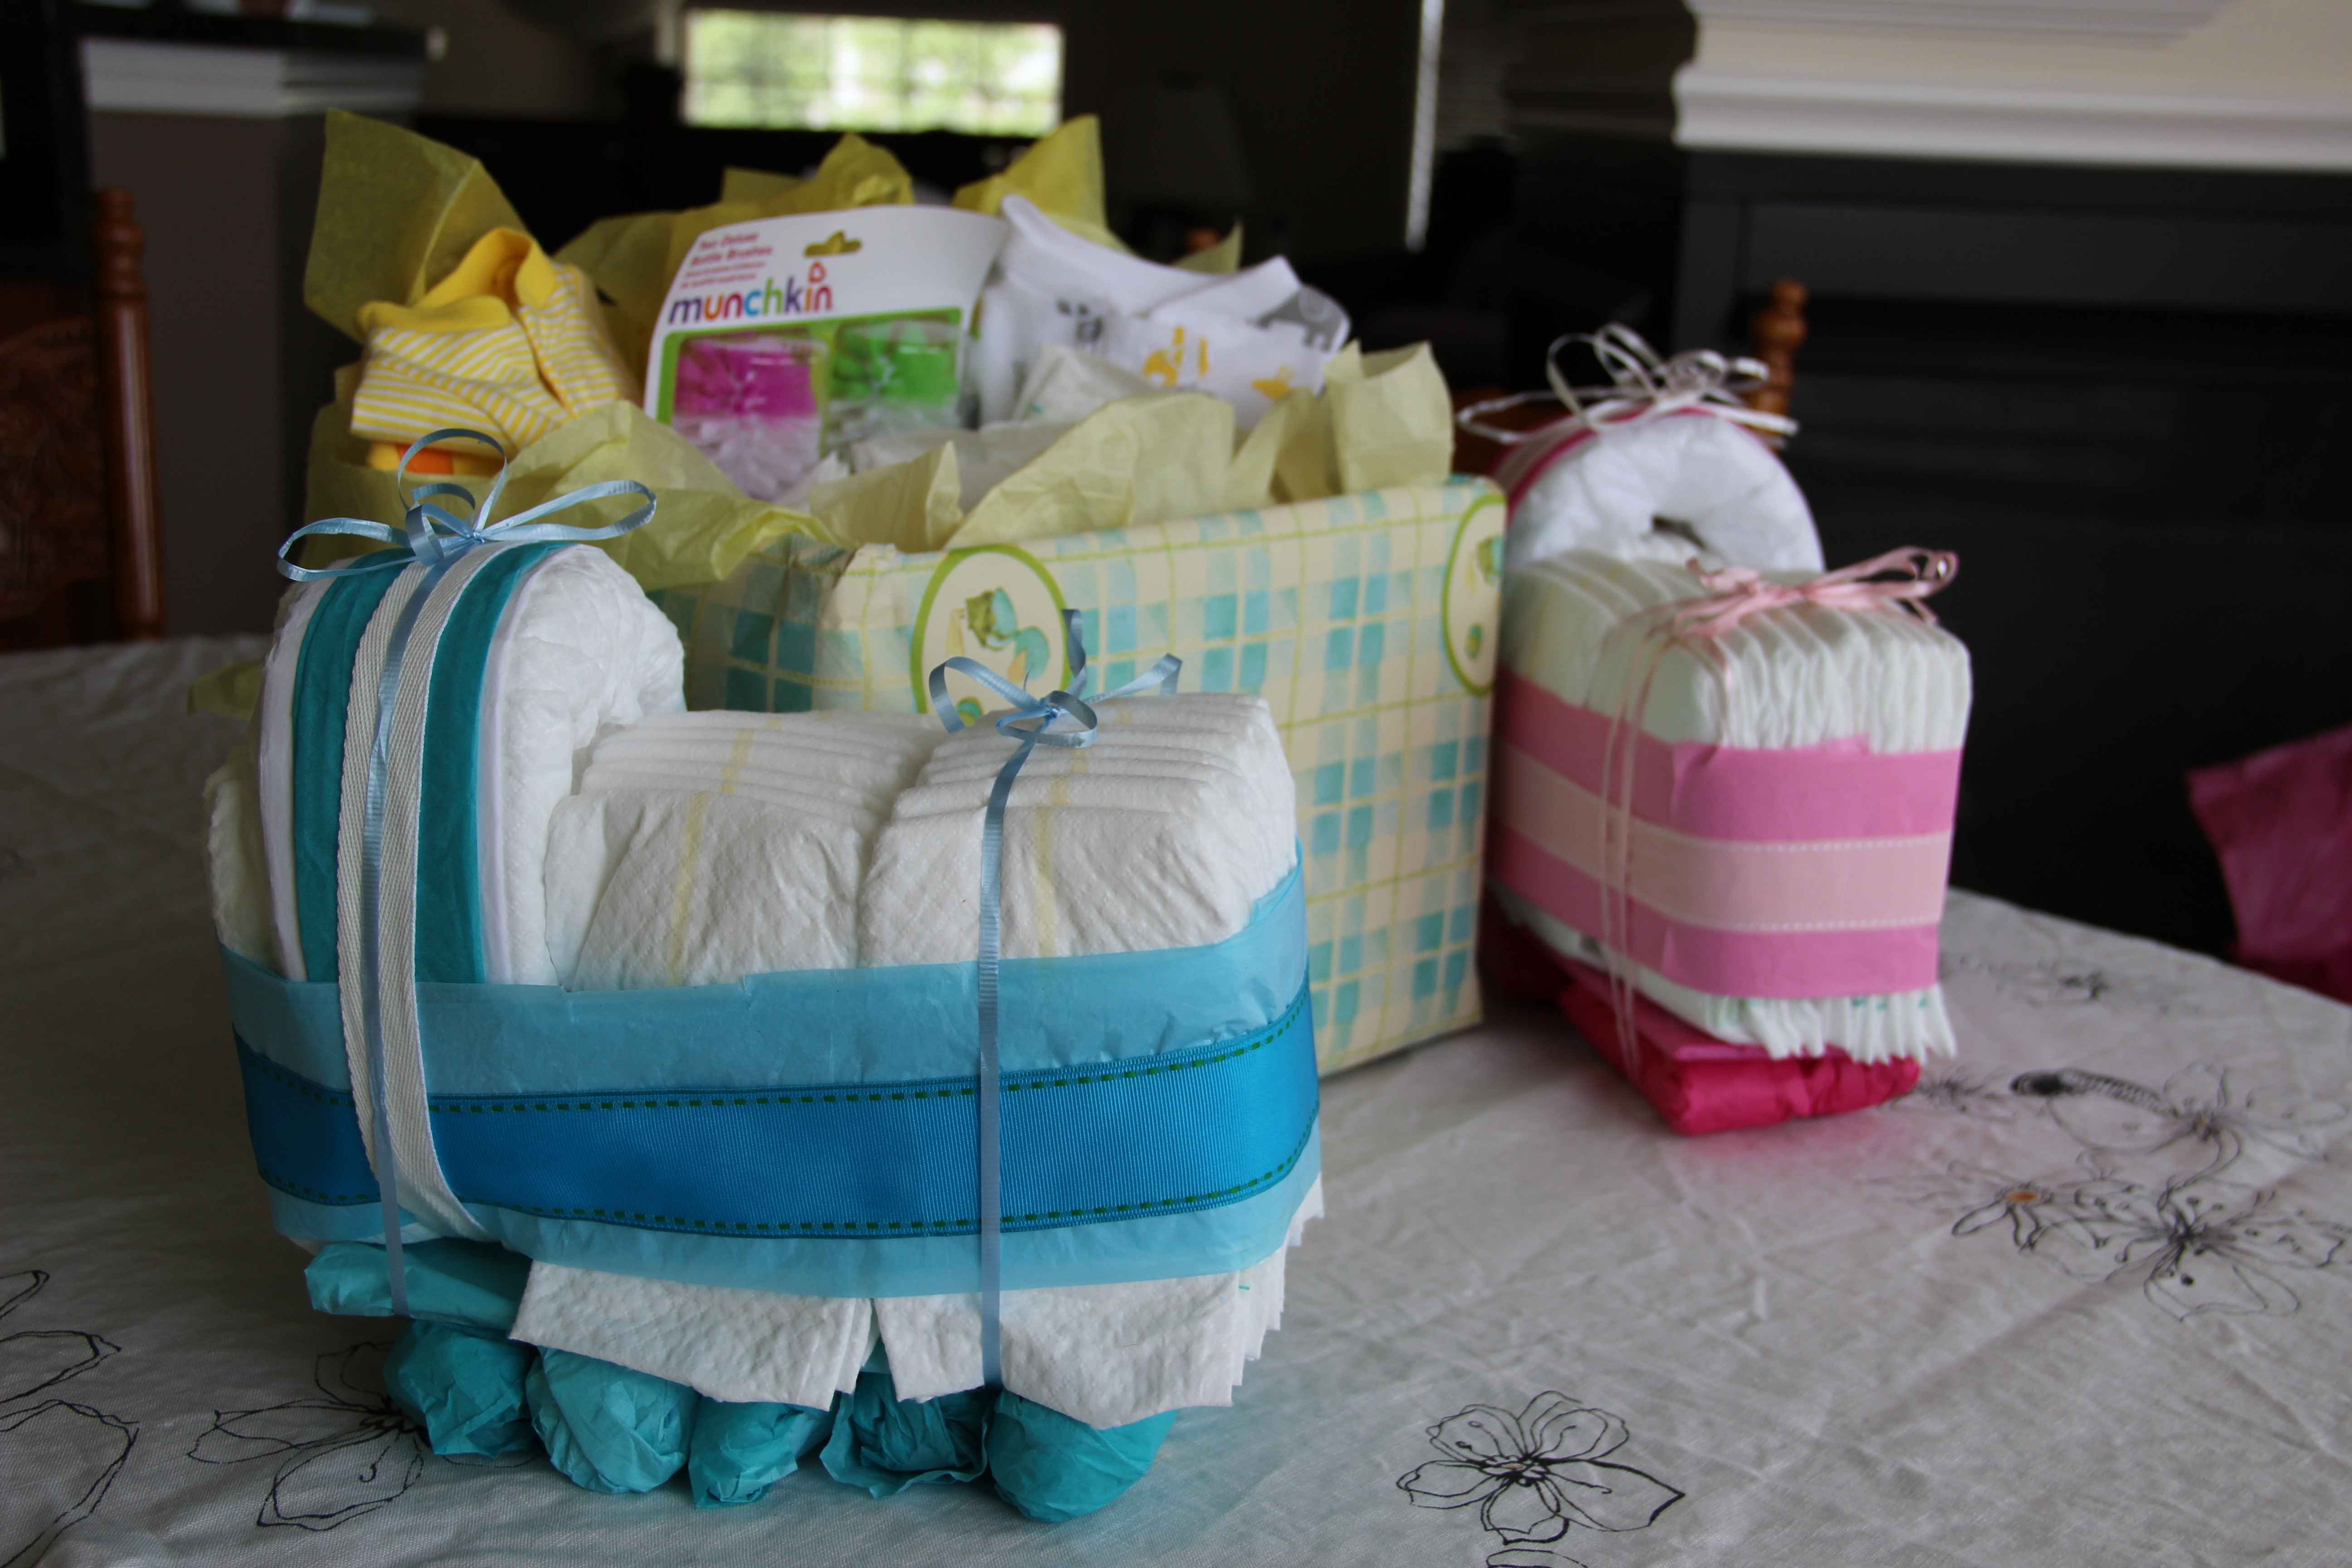 Baby Shower Gift Ideas For A Boy  The Importance of Being Cleveland